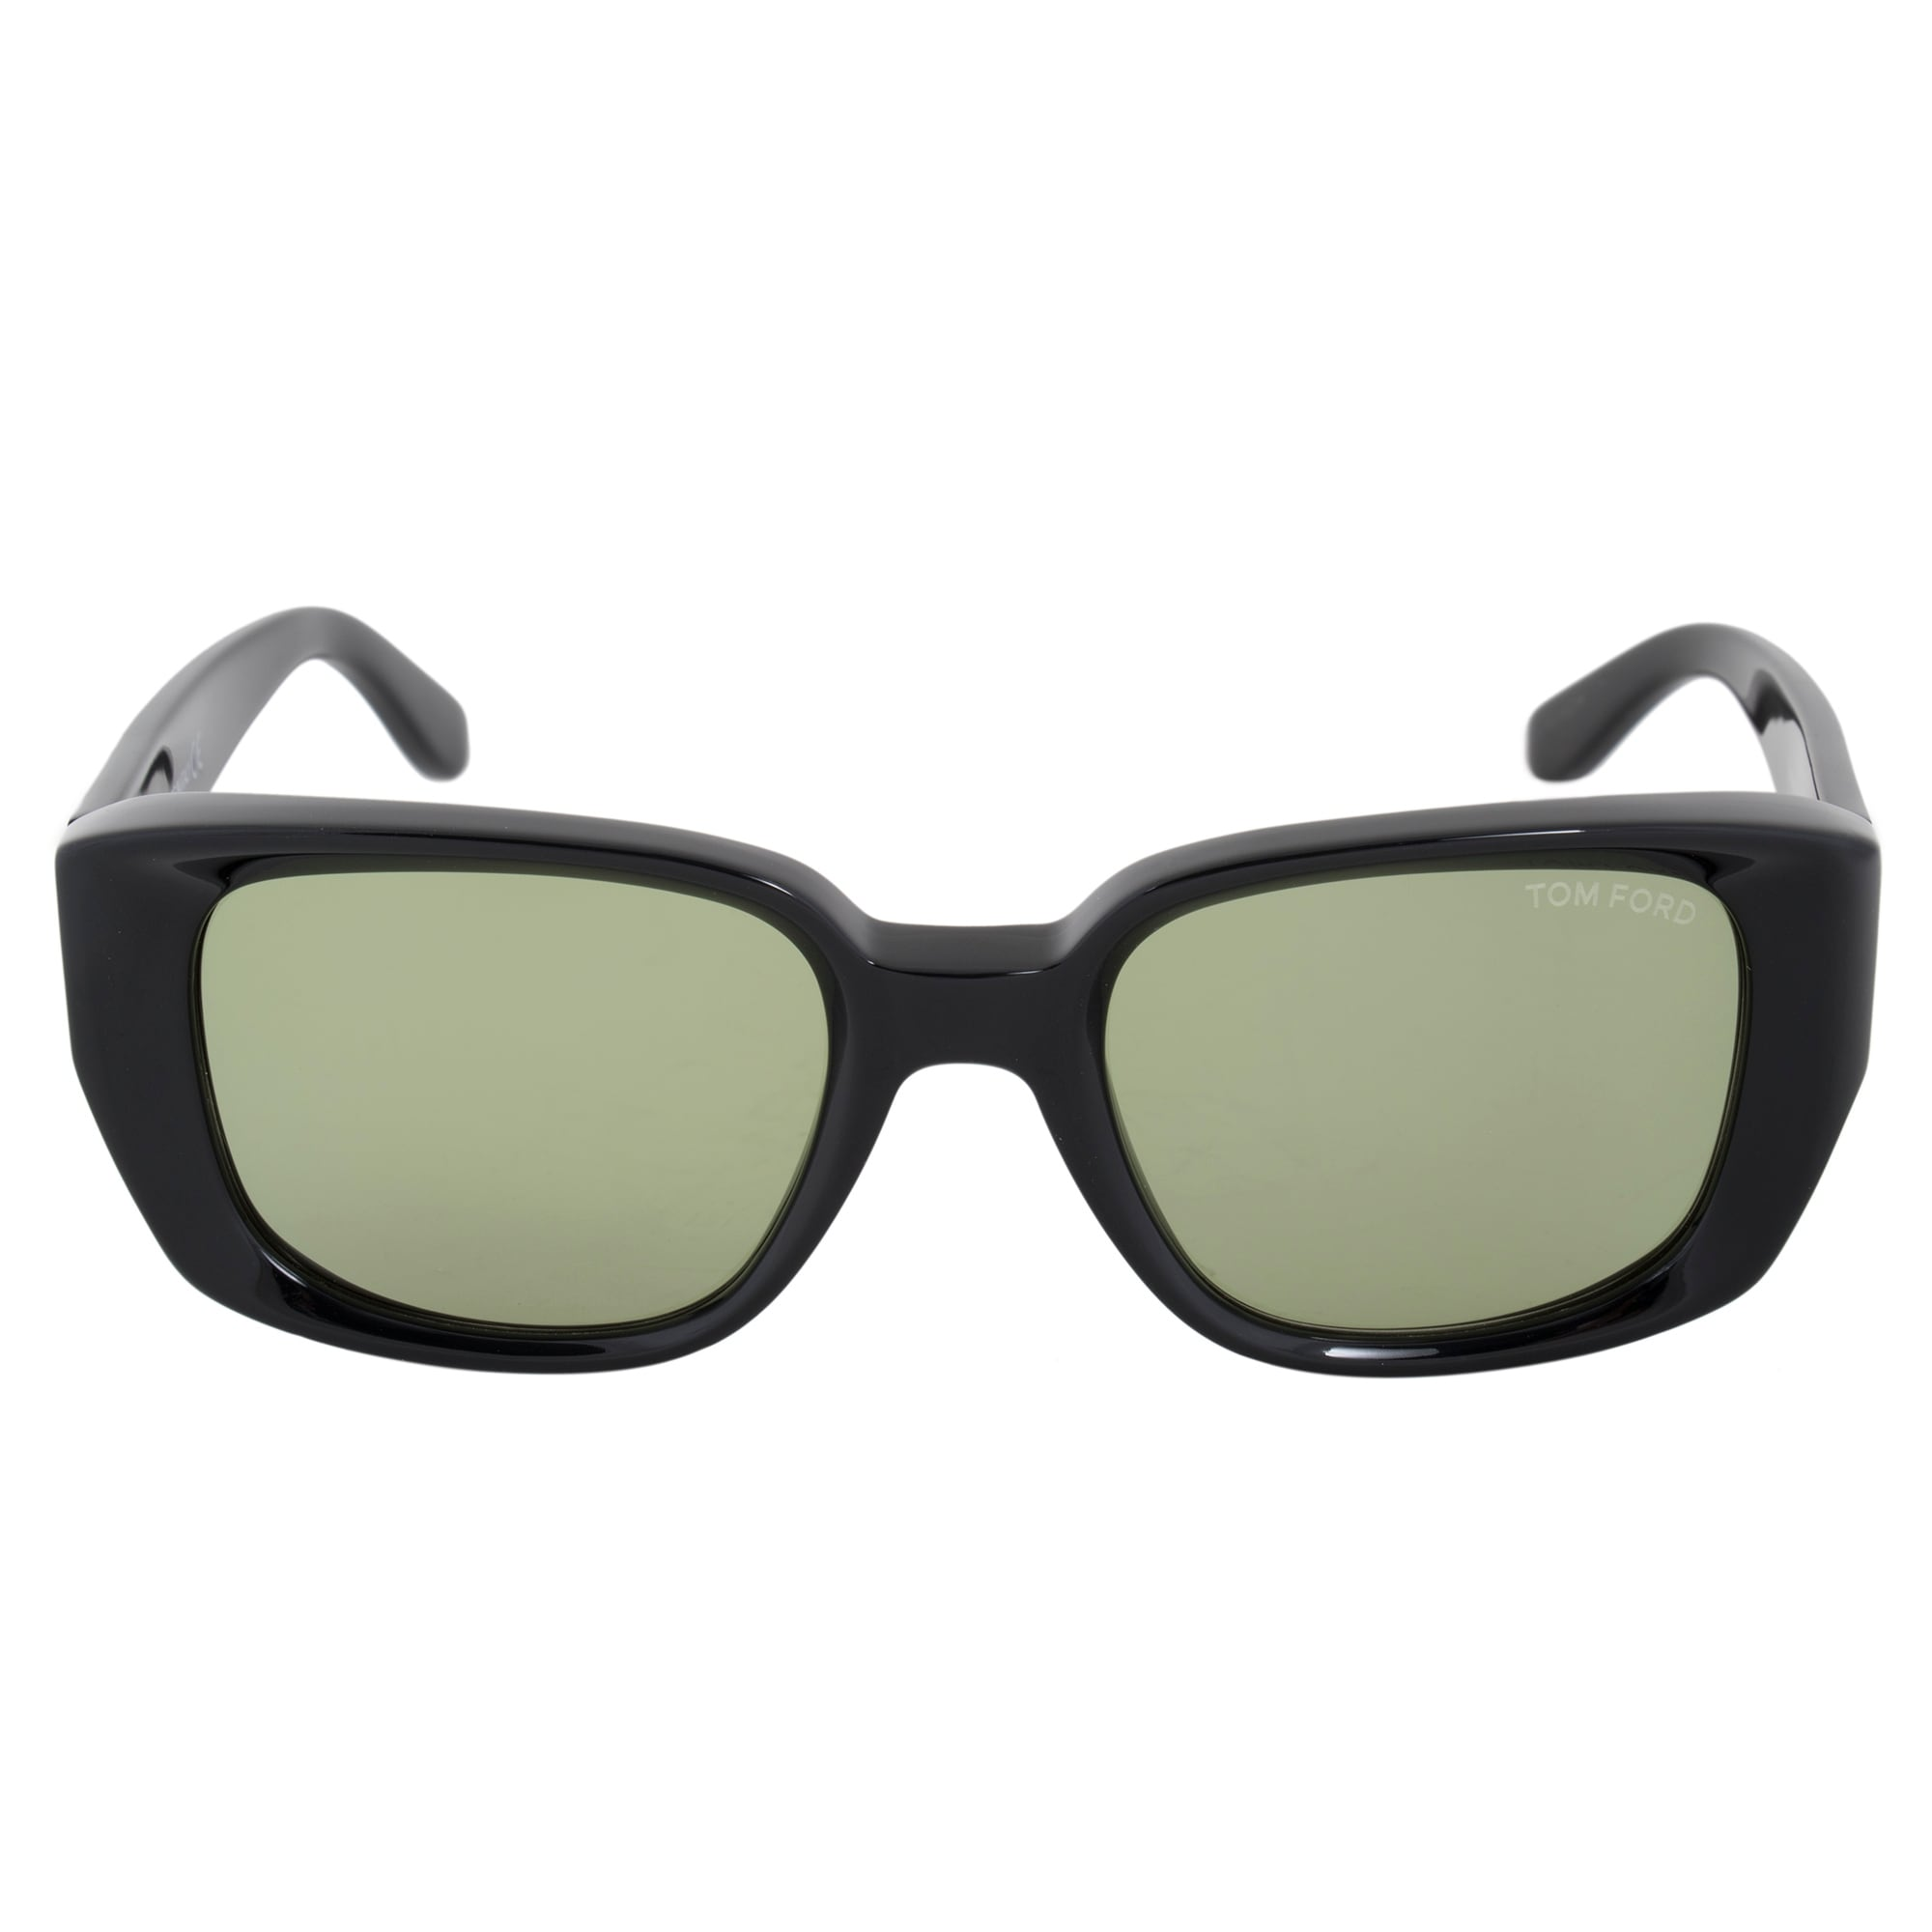 56d32afe0f Shop Tom Ford Raphael Square Sunglasses FT0492 01N 52 - Free Shipping Today  - Overstock - 19622464